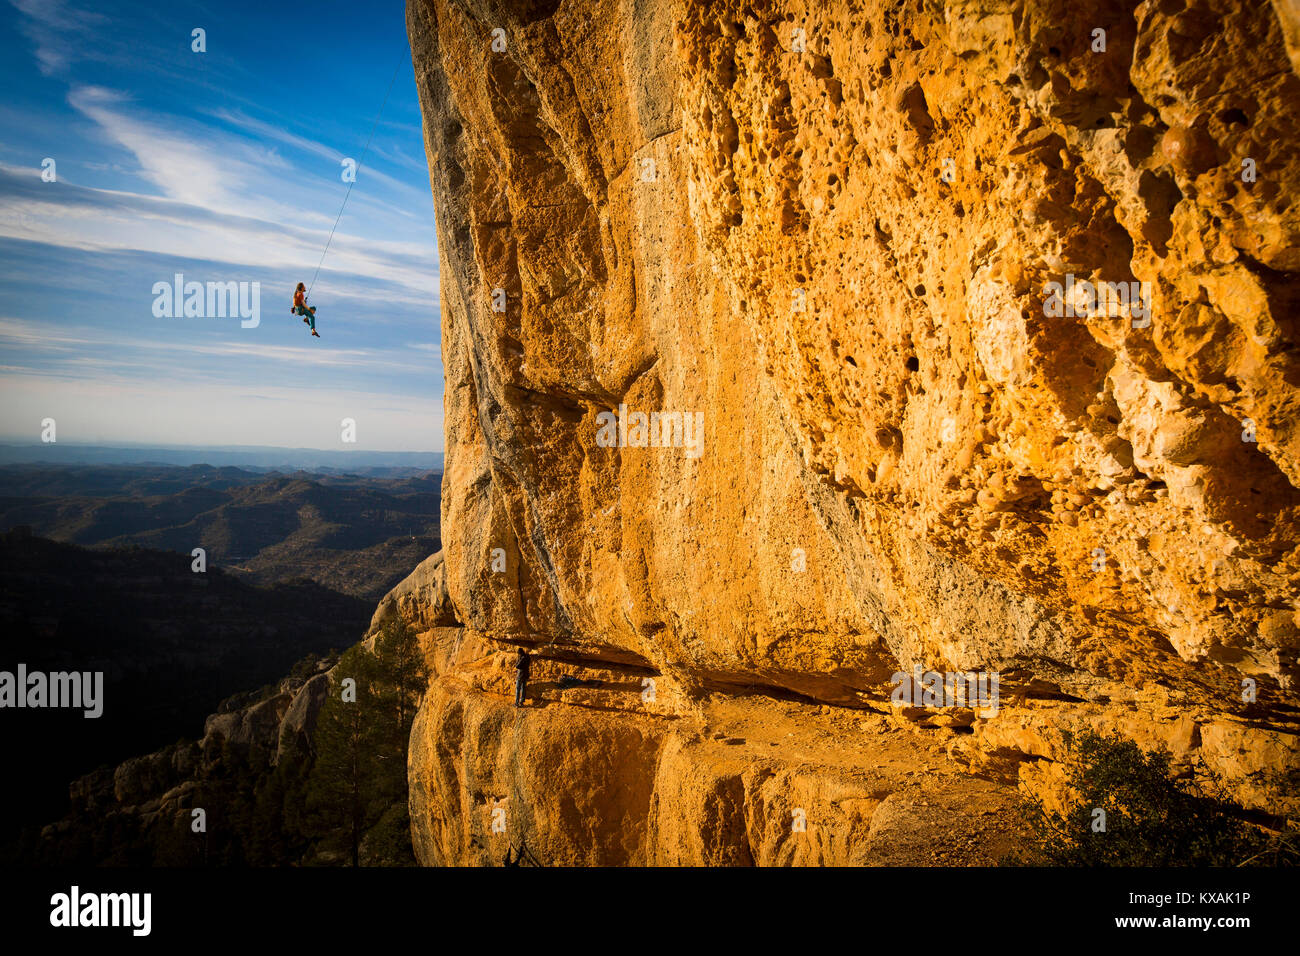 Climber swinging from climbing rope, Magaluf, Catalonia, Spain - Stock Image